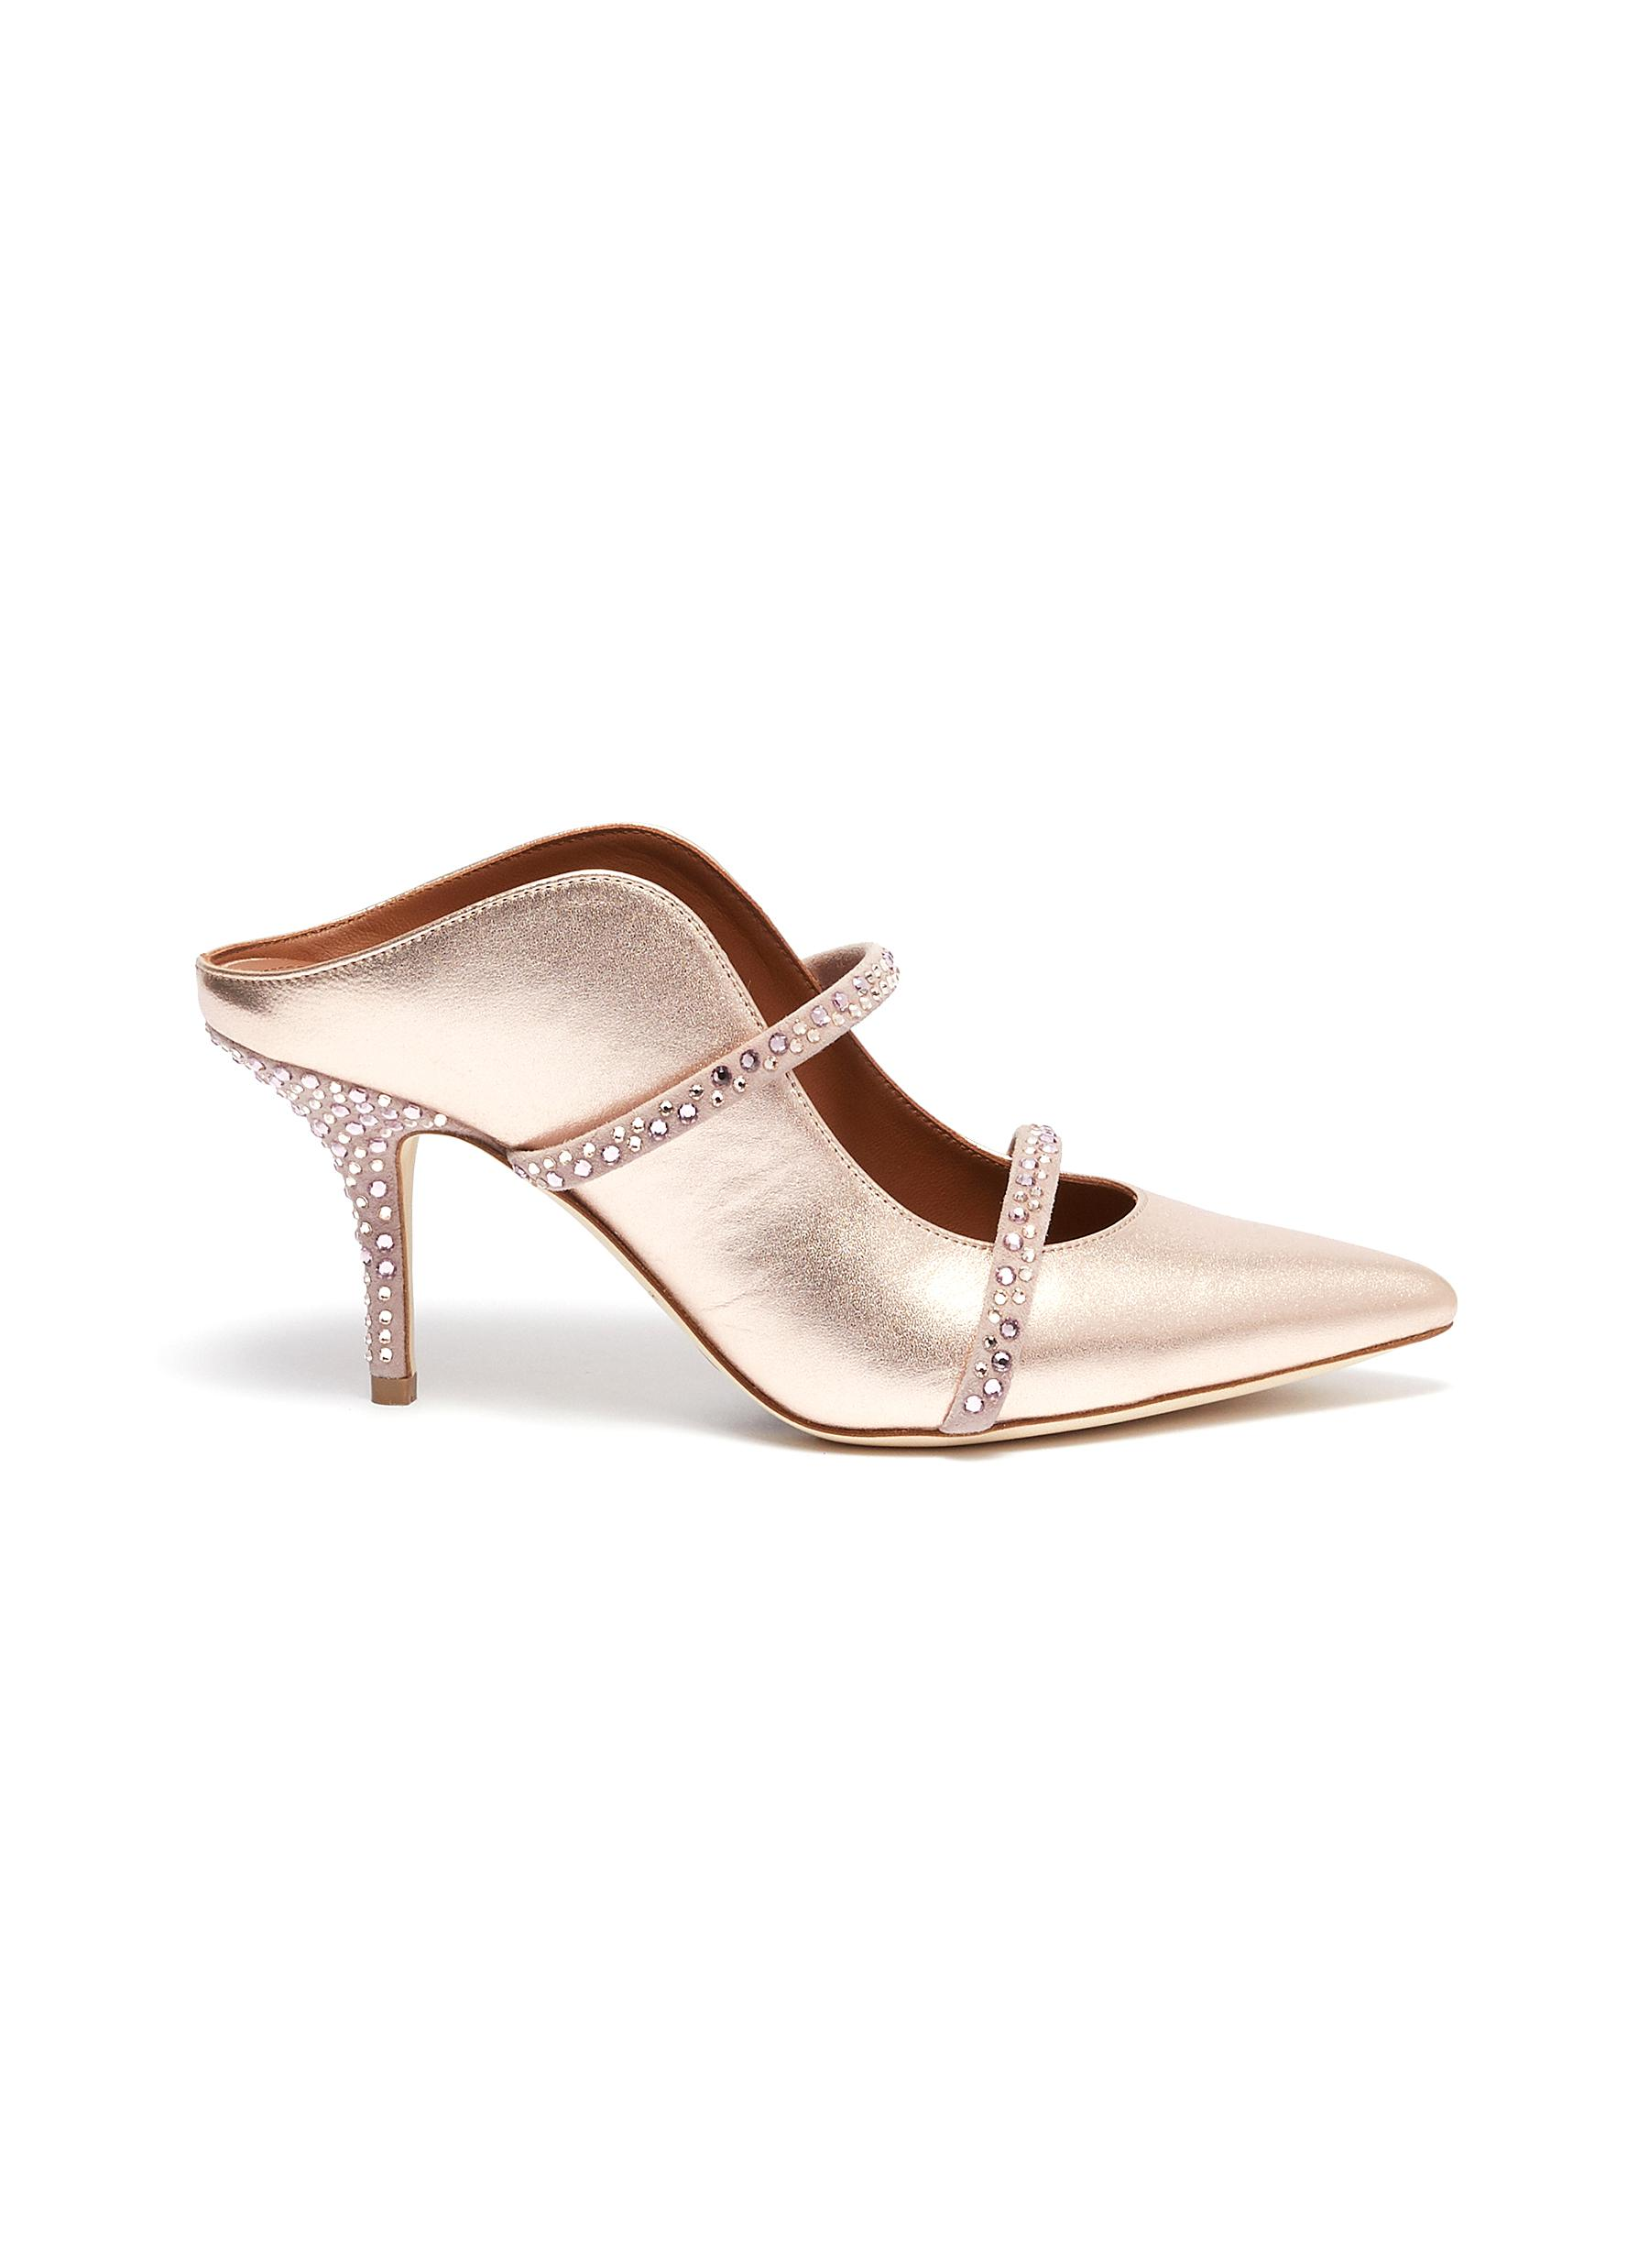 Maureen strass embellished metallic leather strappy mules by Malone Souliers